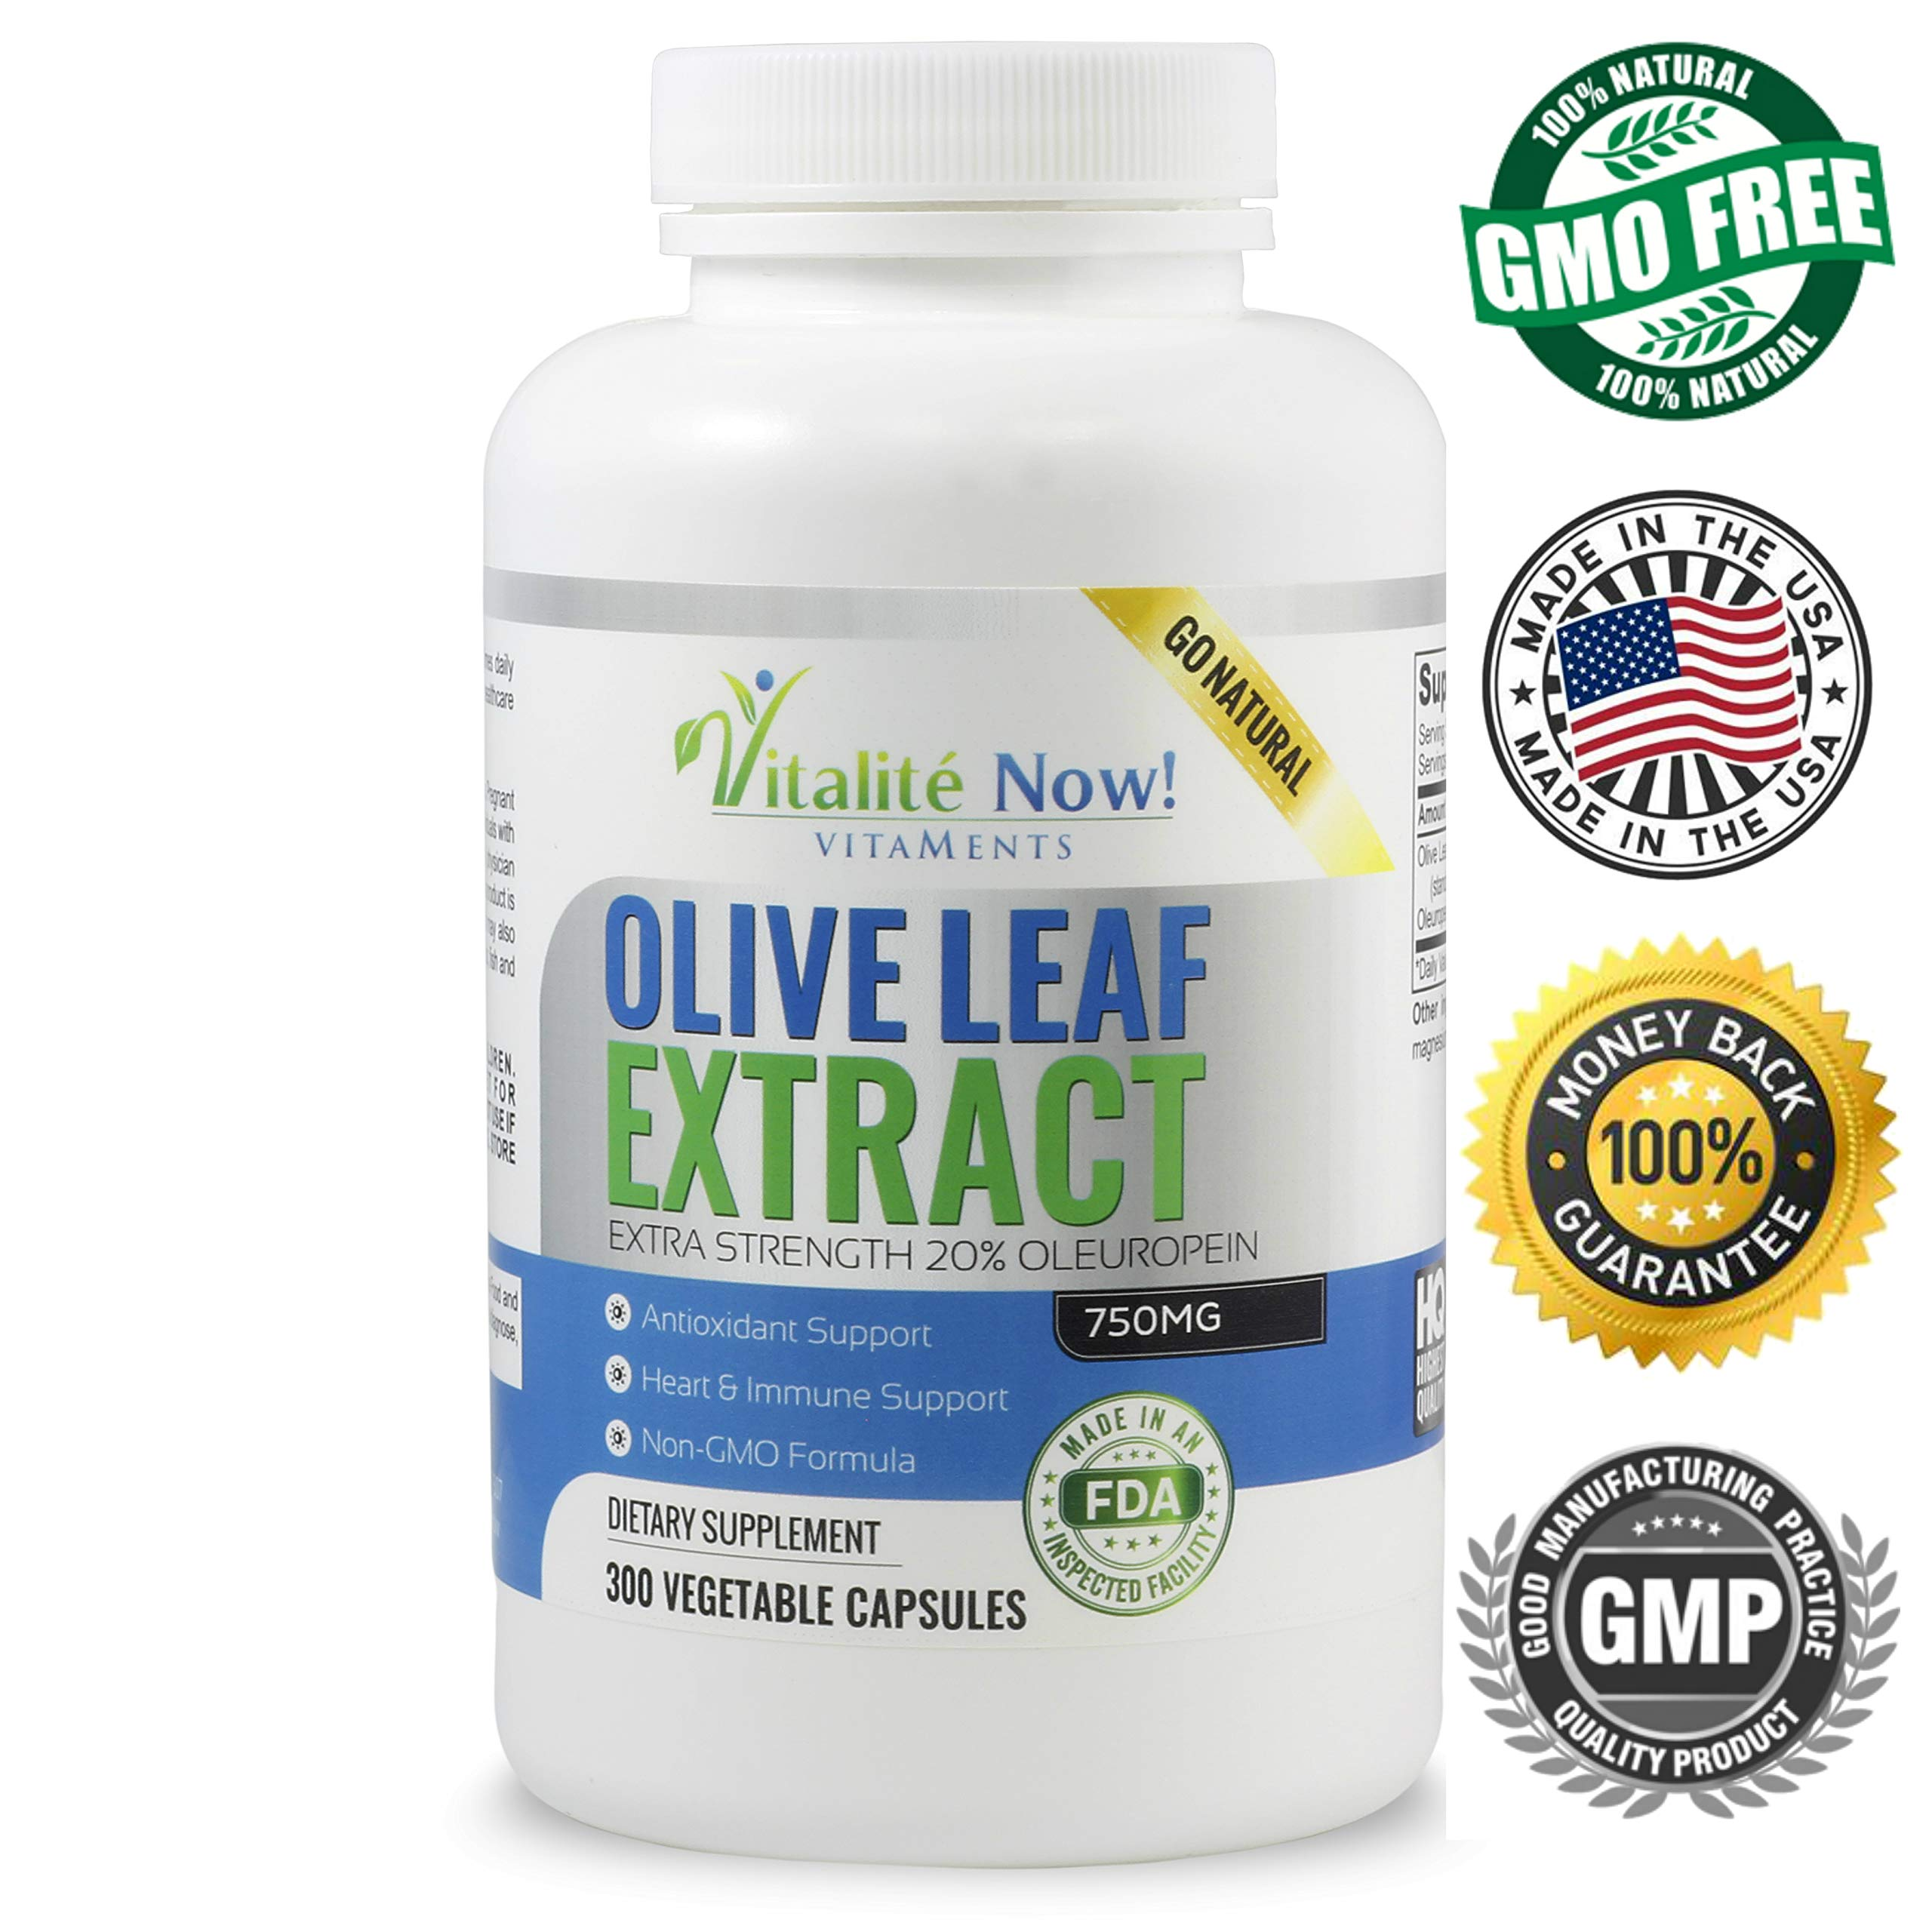 Up Size Super Strength Best Olive Leaf Extract (Non-GMO) - 20% Oleuropein - Anti-inflammatory - Potent Antioxidant & Immune Support Supplement - Up to 9 Months - 750mg Capsules - Vegetarian 300 Count